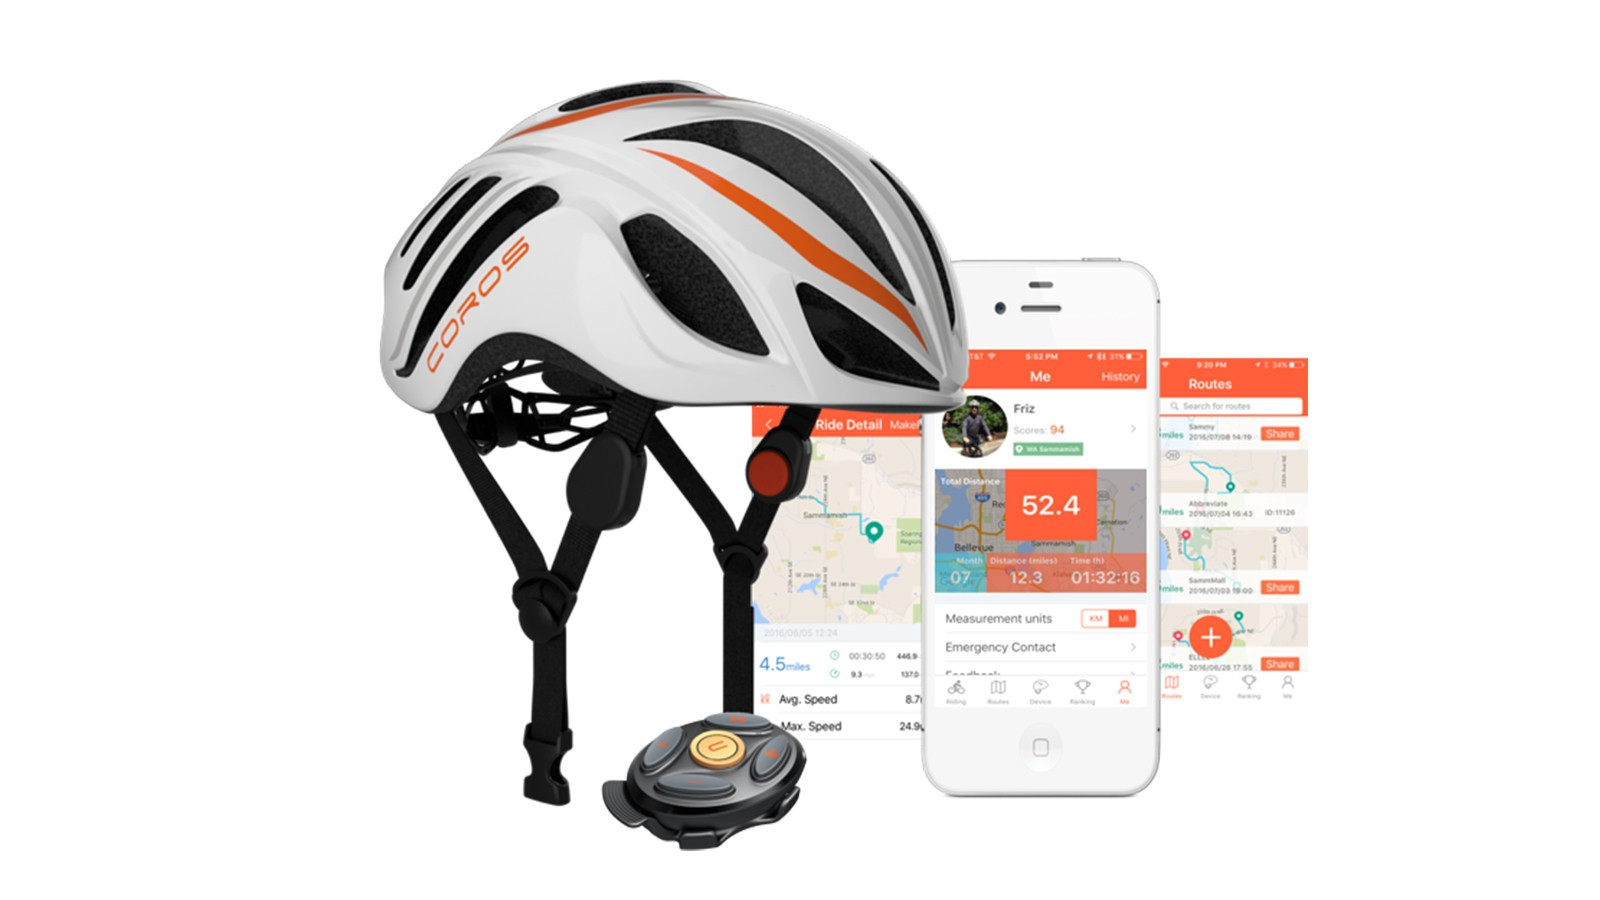 The Coros LINX helmet with bone-conduction audio and accompanying app